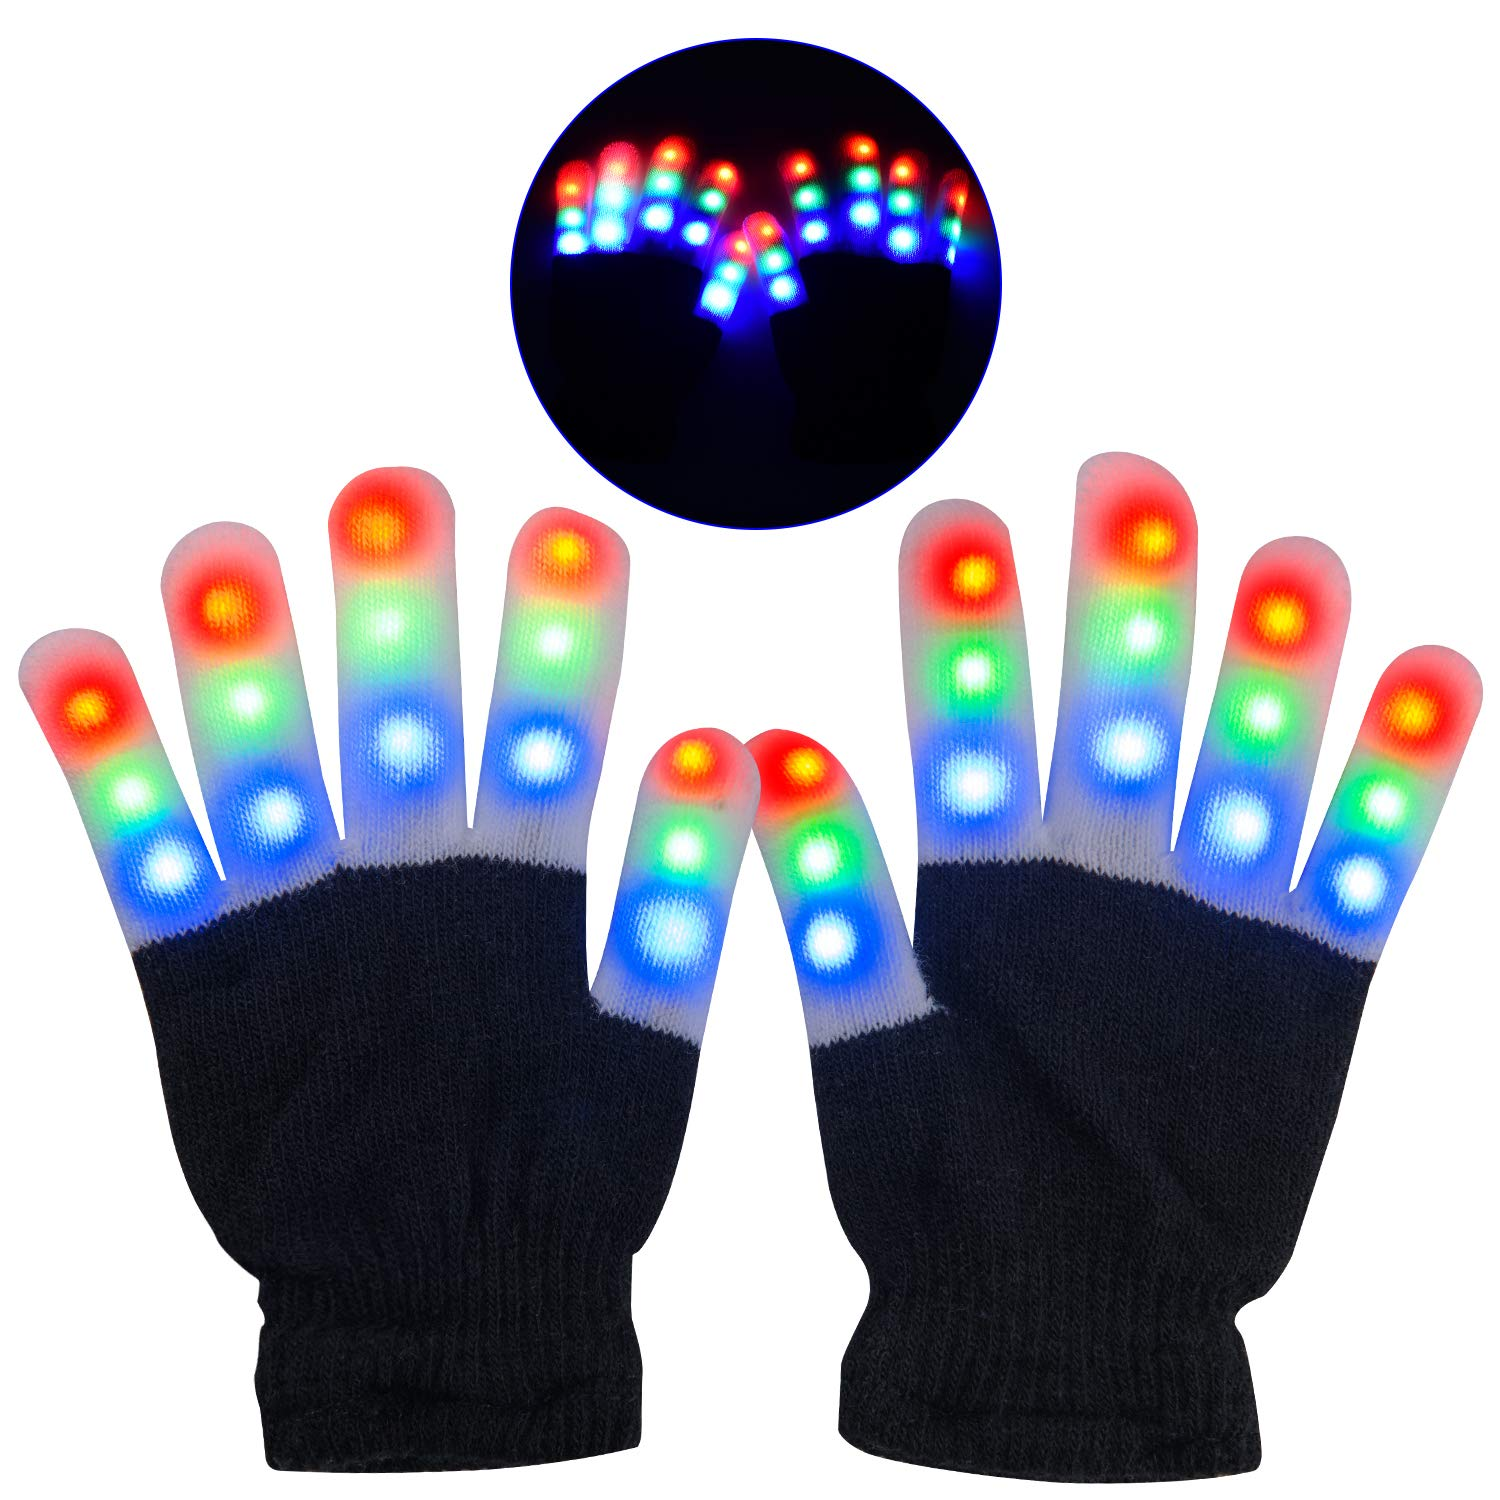 Cool LED Flashing Gloves for Halloween or Anytime!